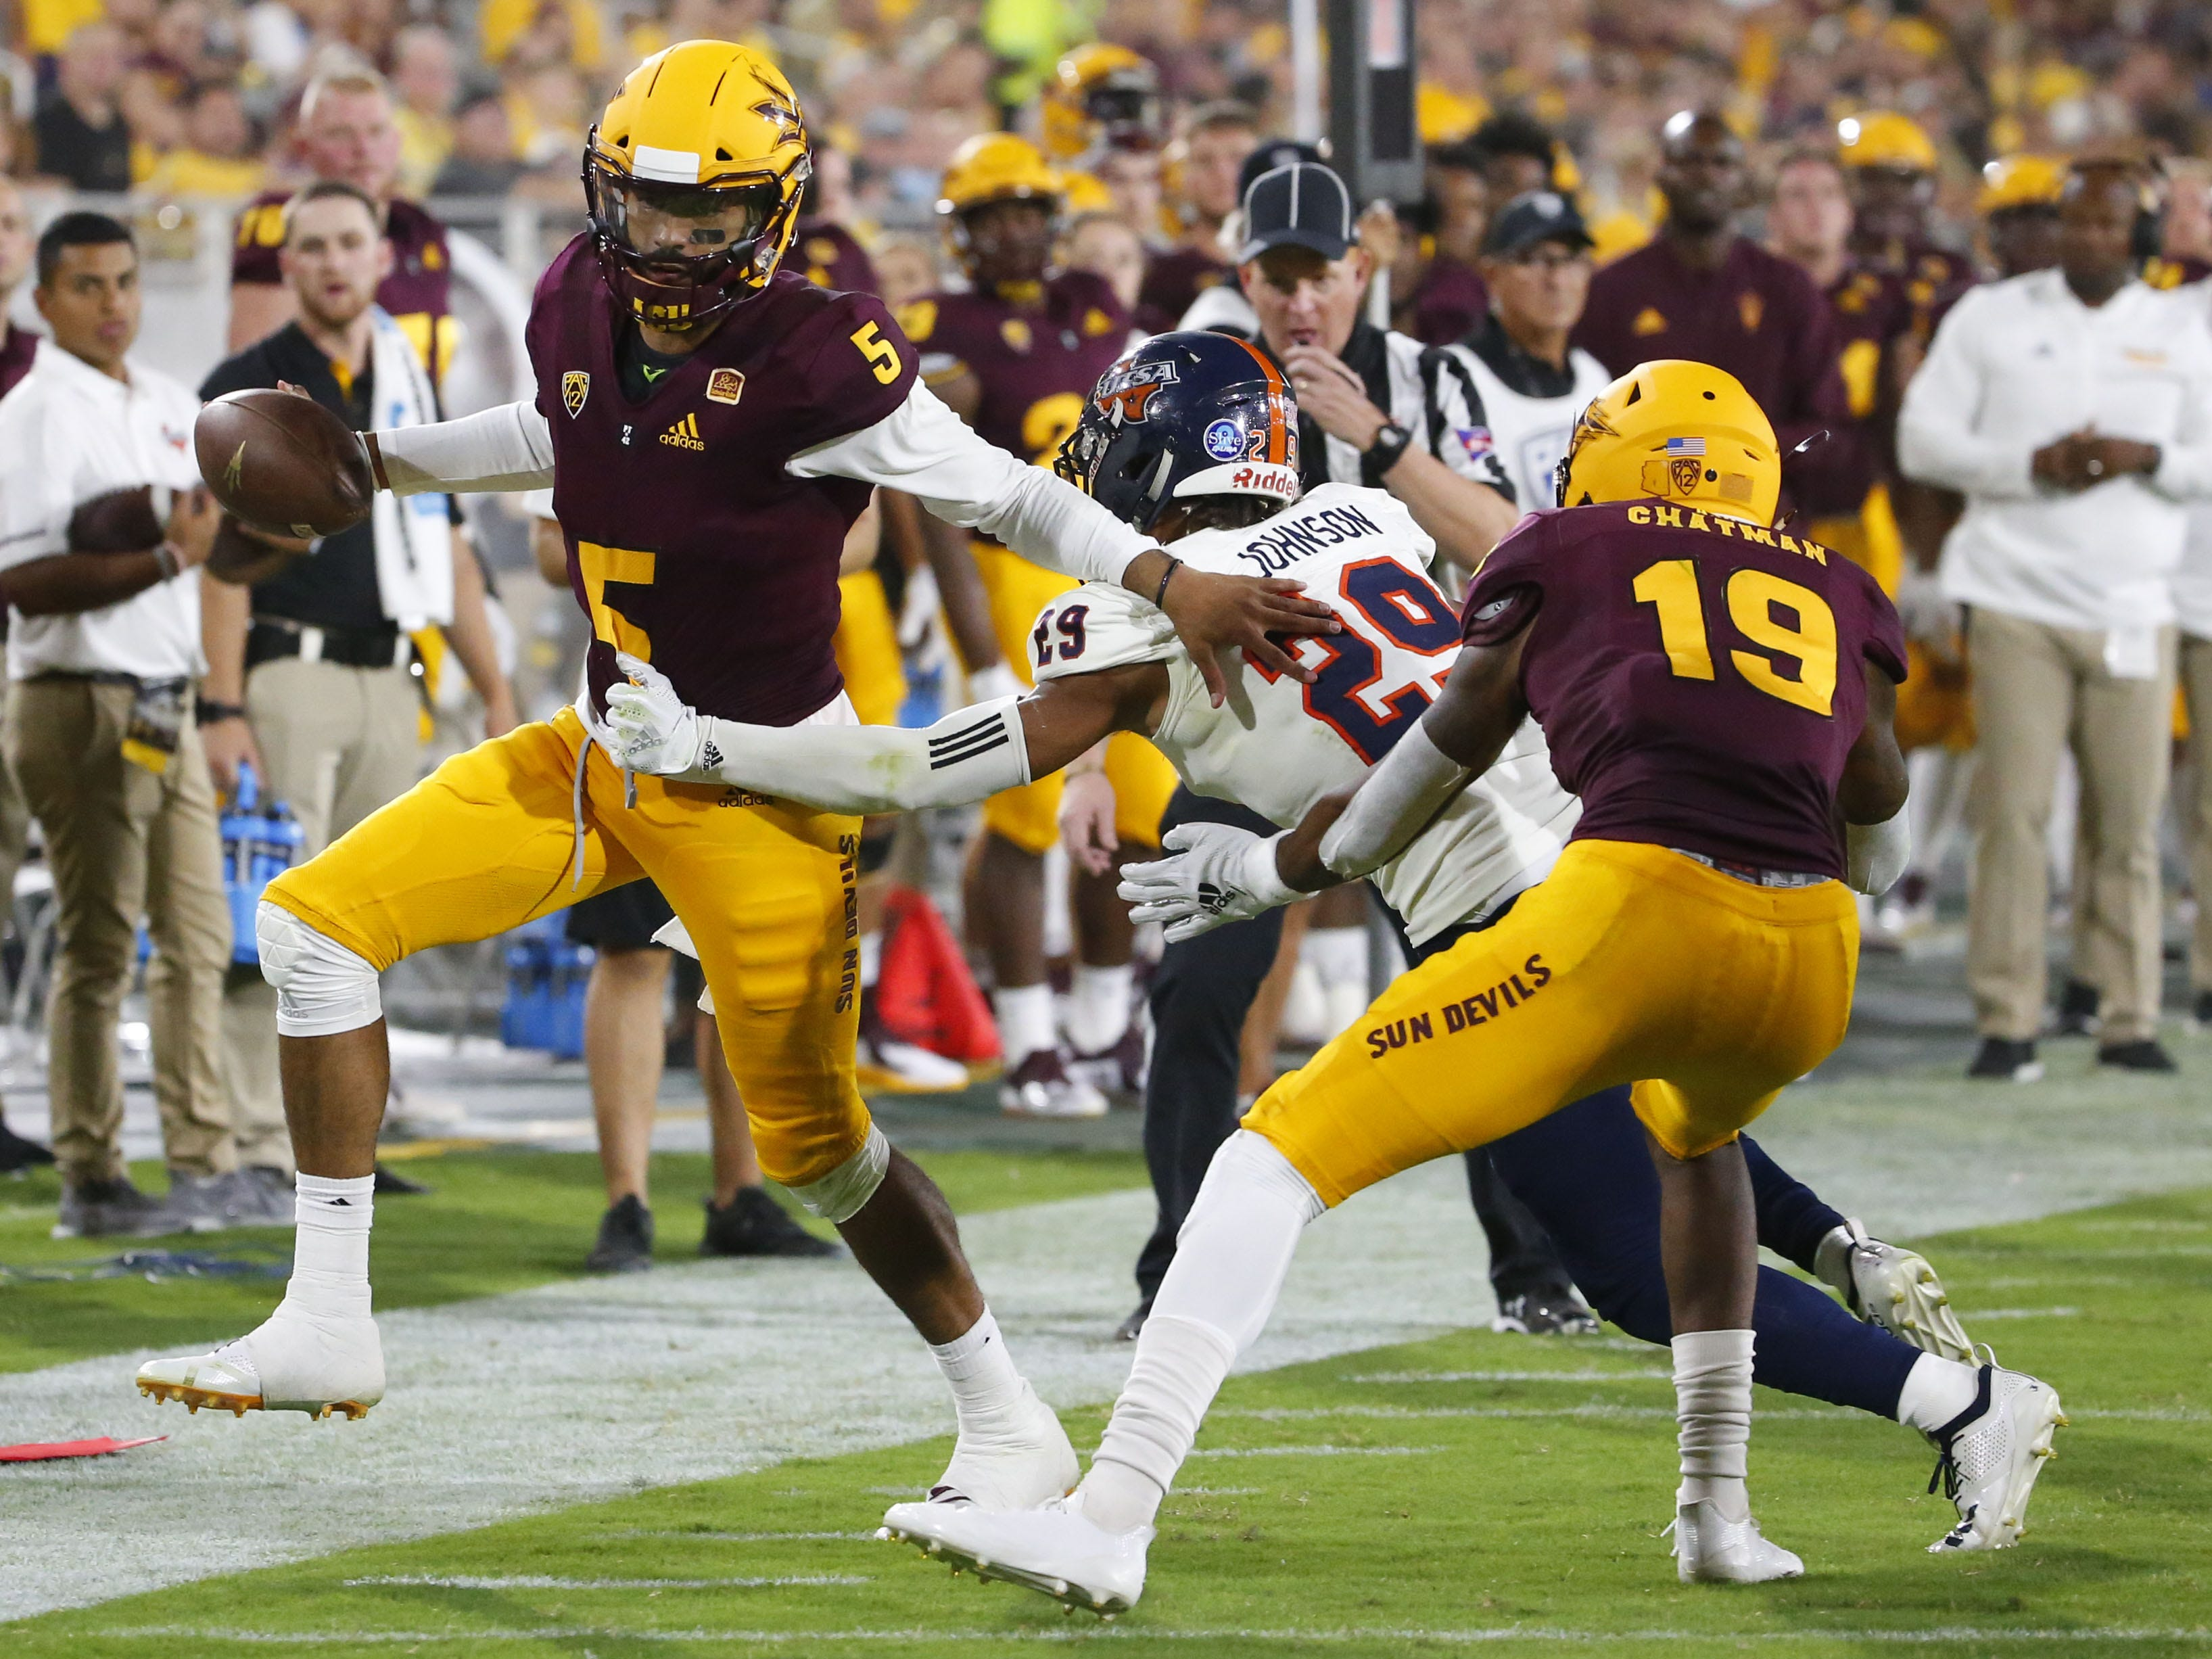 Arizona State Sun Devils quarterback Manny Wilkins (5) is pushed out of bounds by UTSA Roadrunners cornerback Clayton Johnson (29) during a football game at Sun Devil Stadium in Tempe on September 1, 2018.